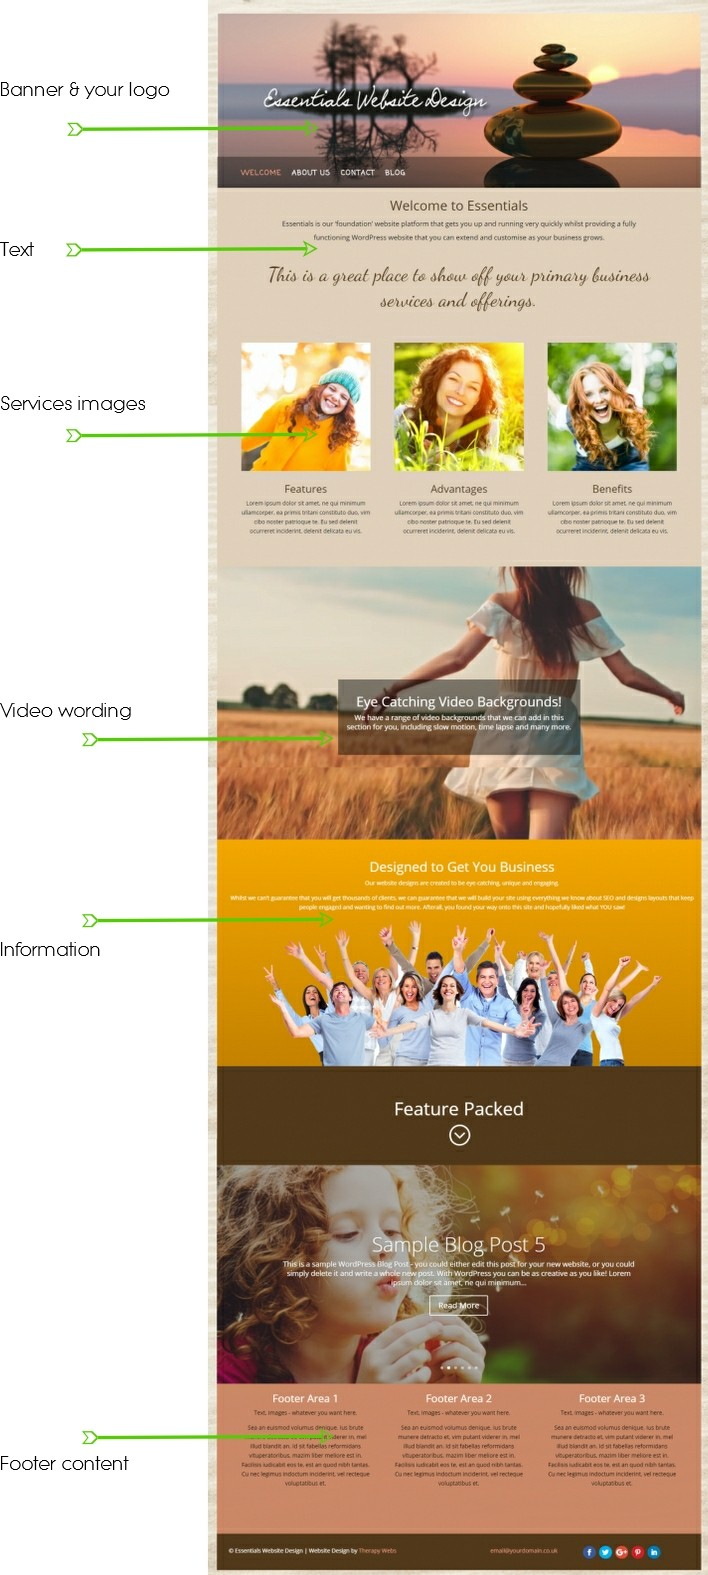 Essentials website design for therapists layout options